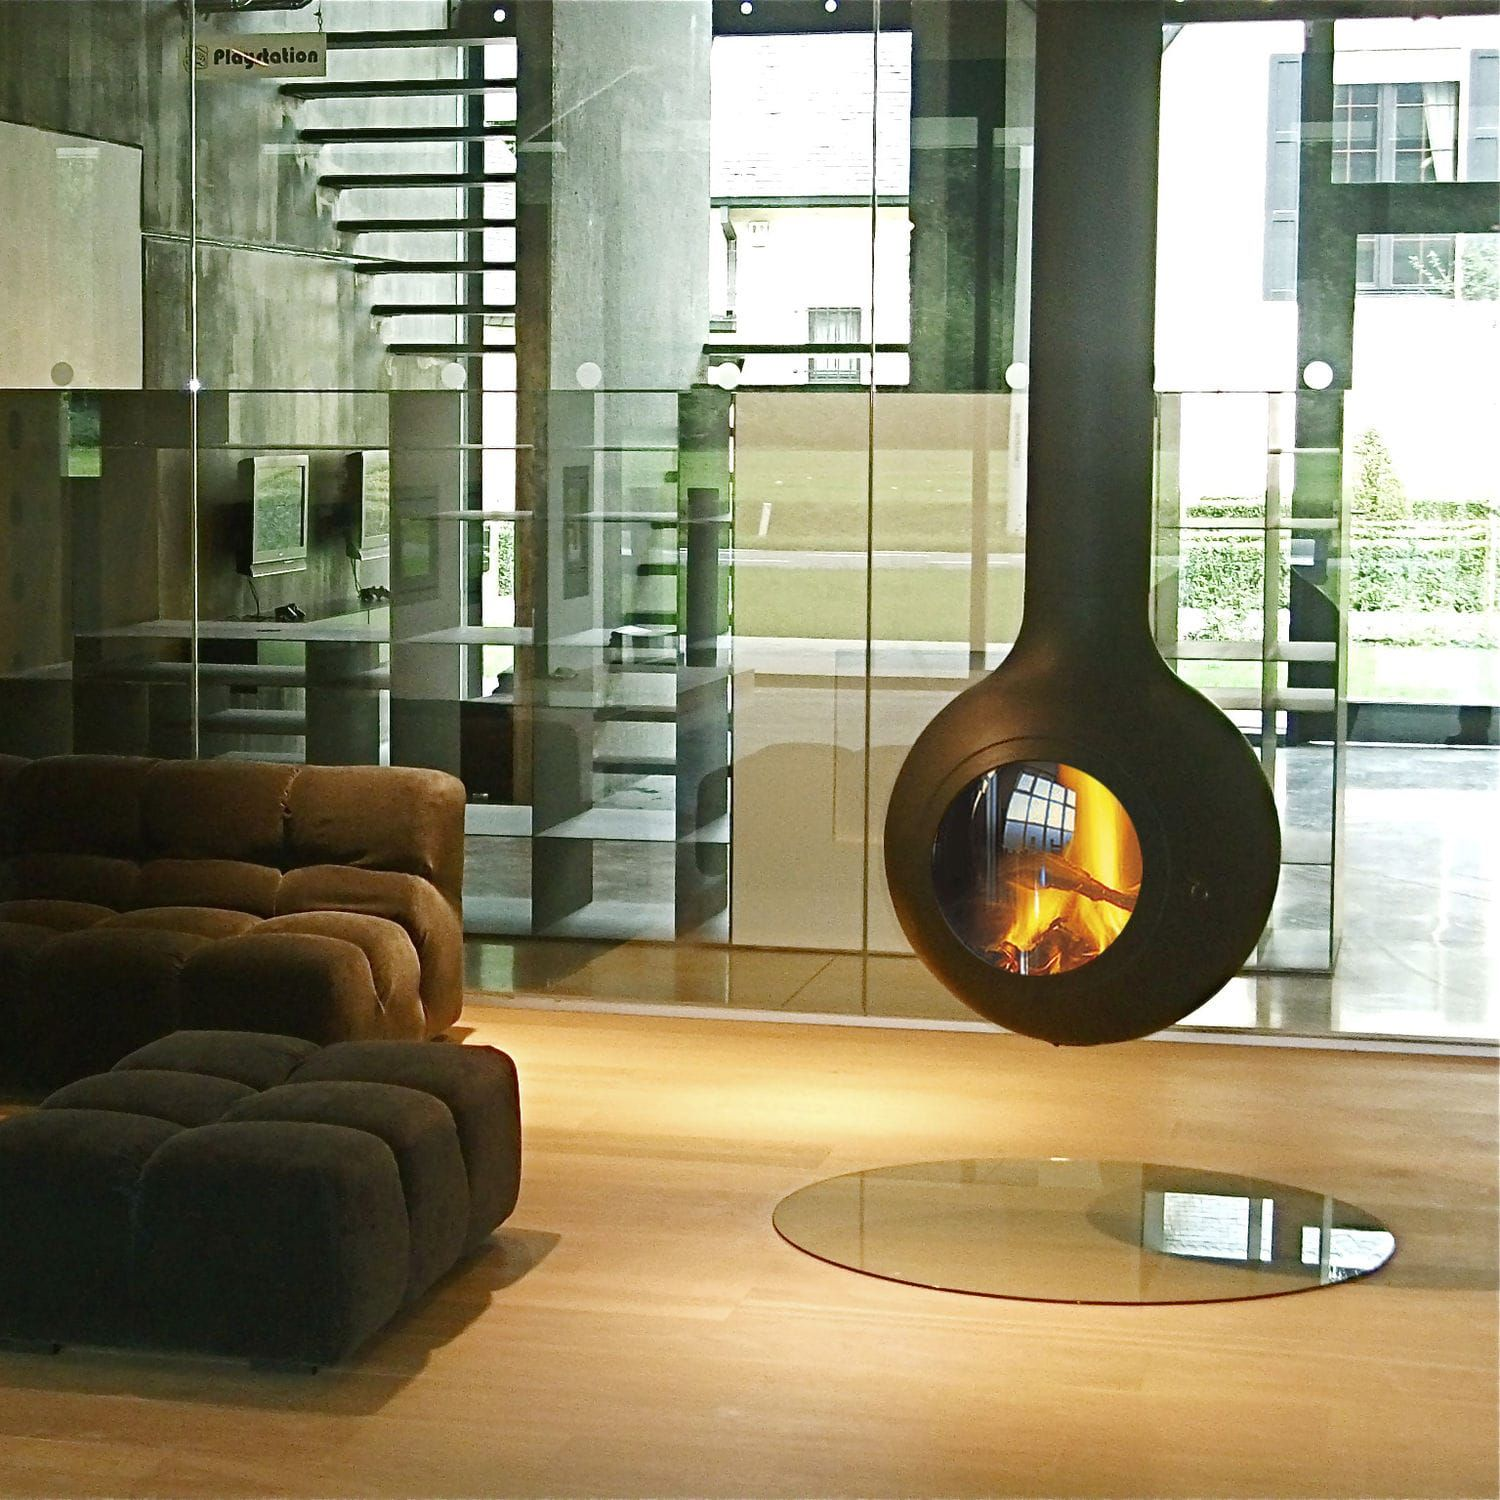 20 Suspended Fireplace Designs In The Living Room